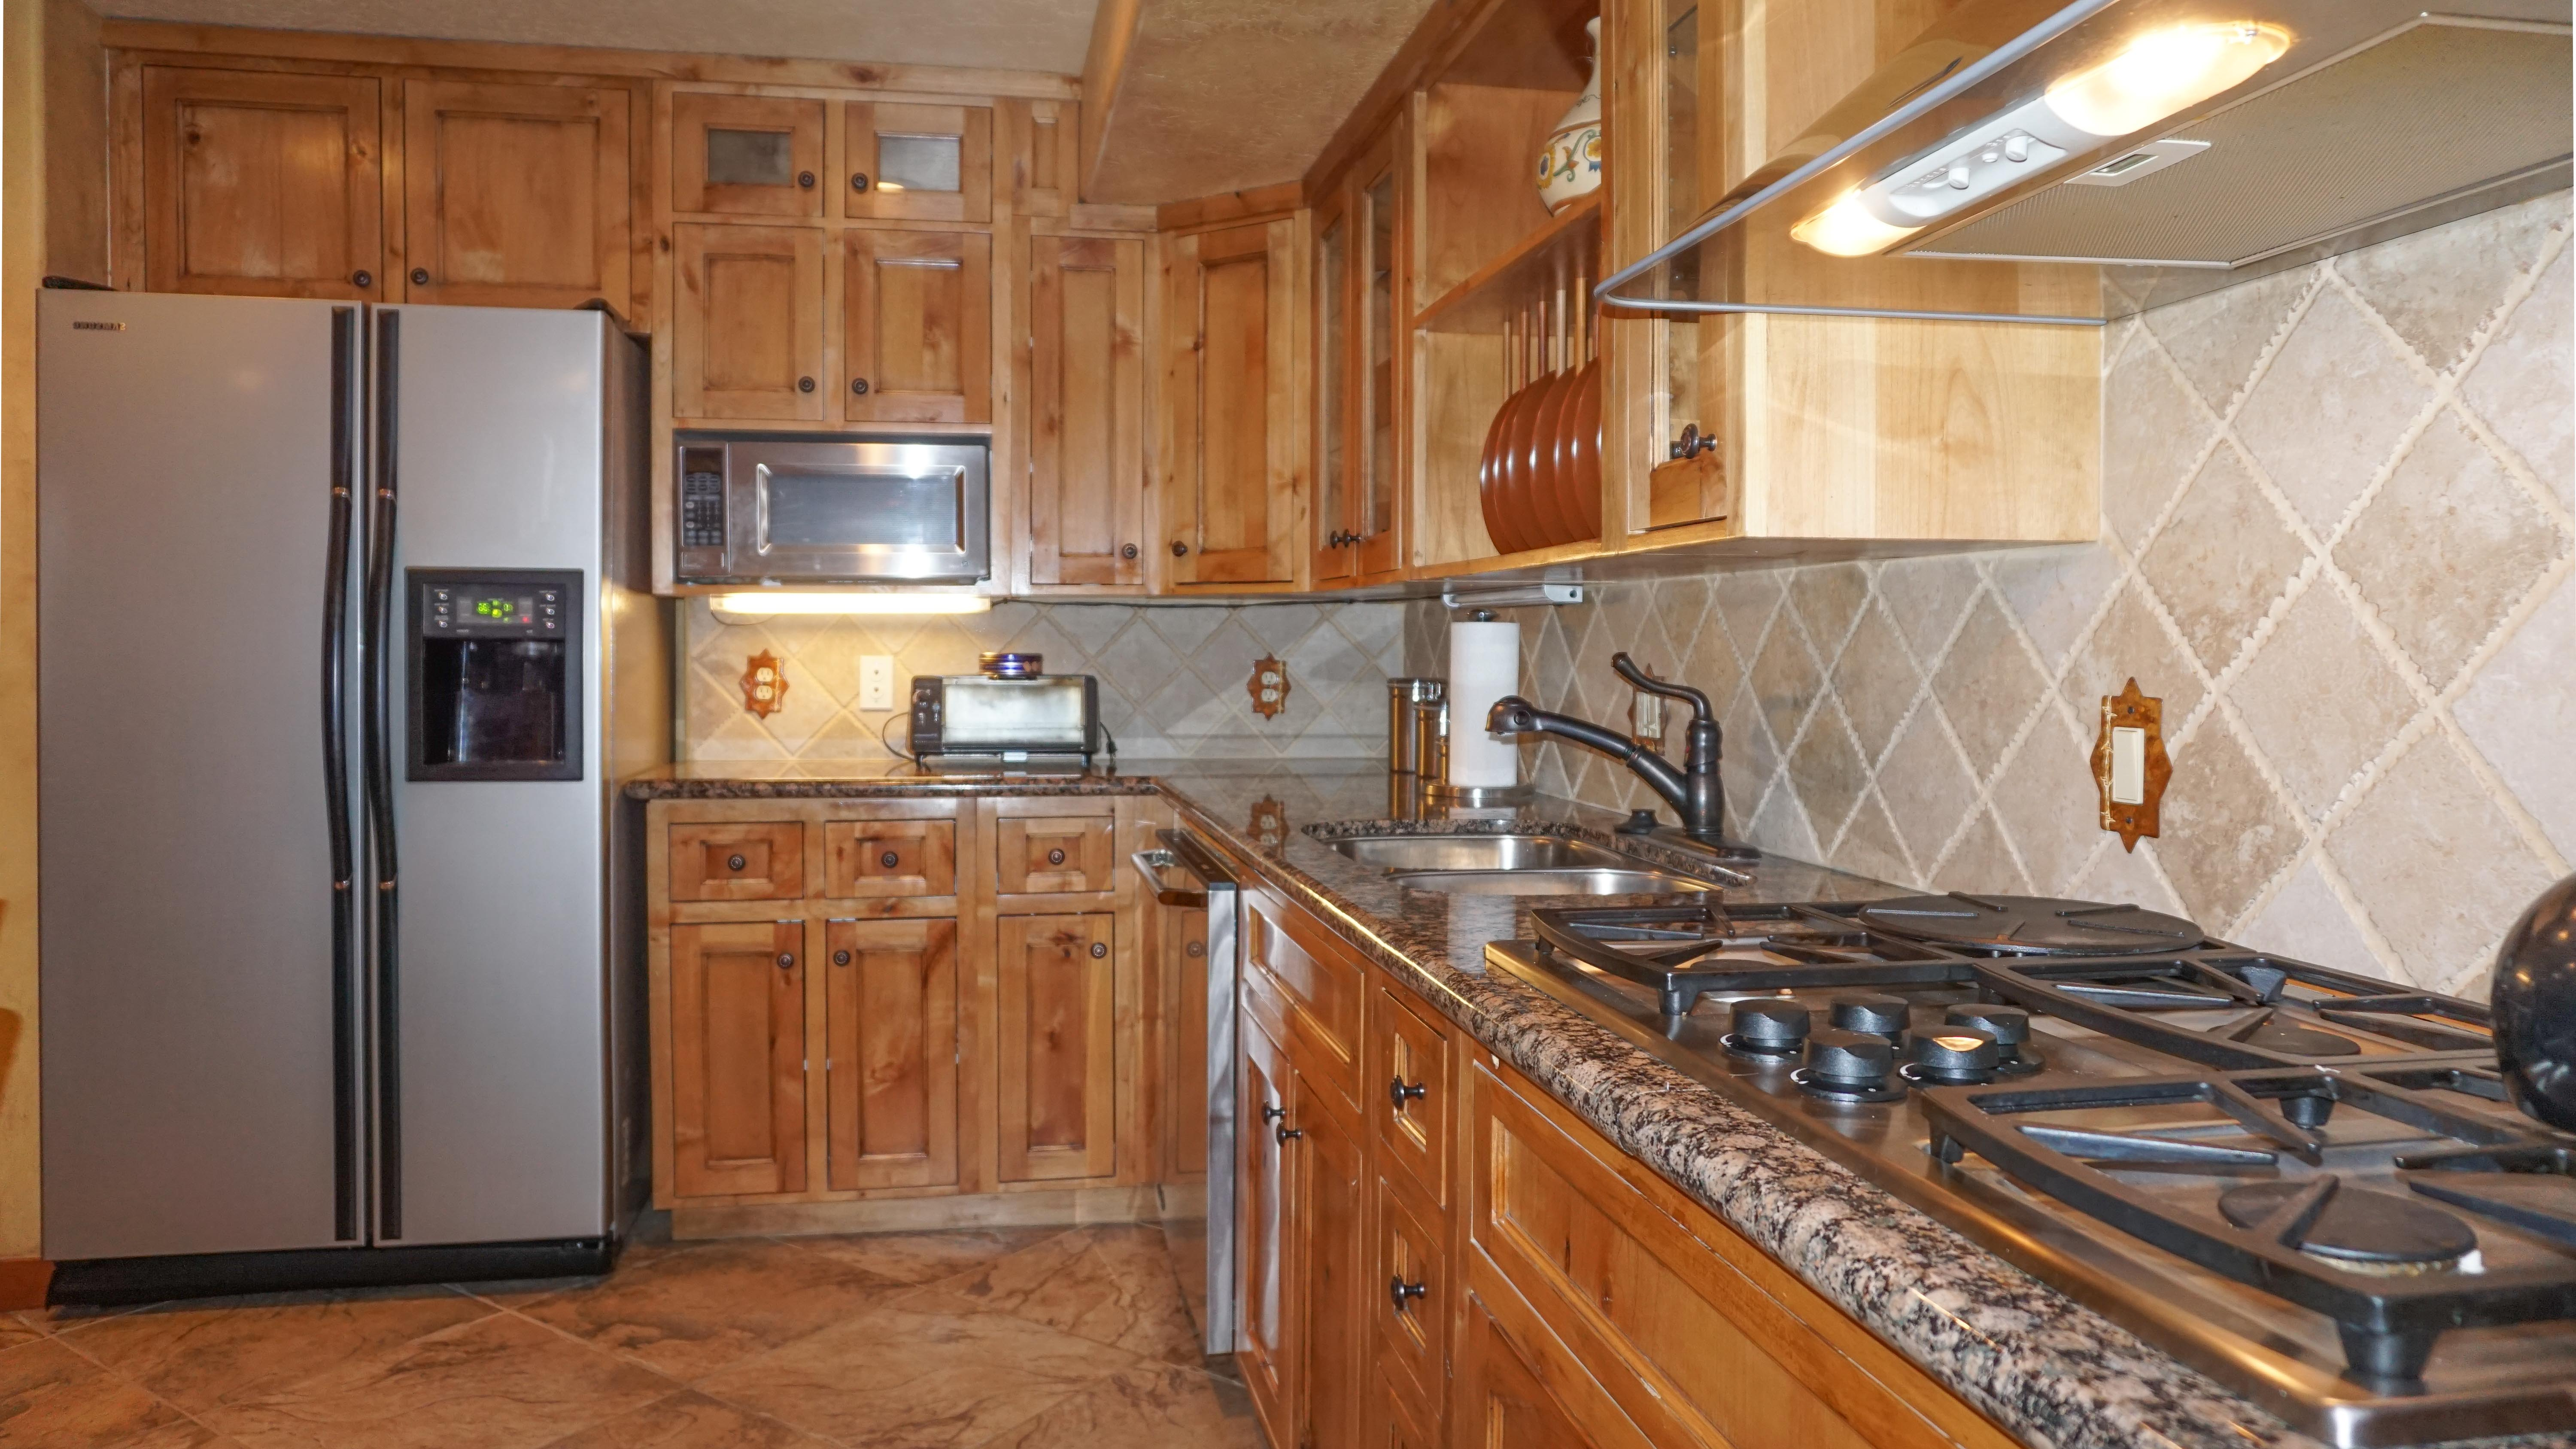 Homes for sale with mother in law apartment in utah for Homes for sale with mother in law apartment